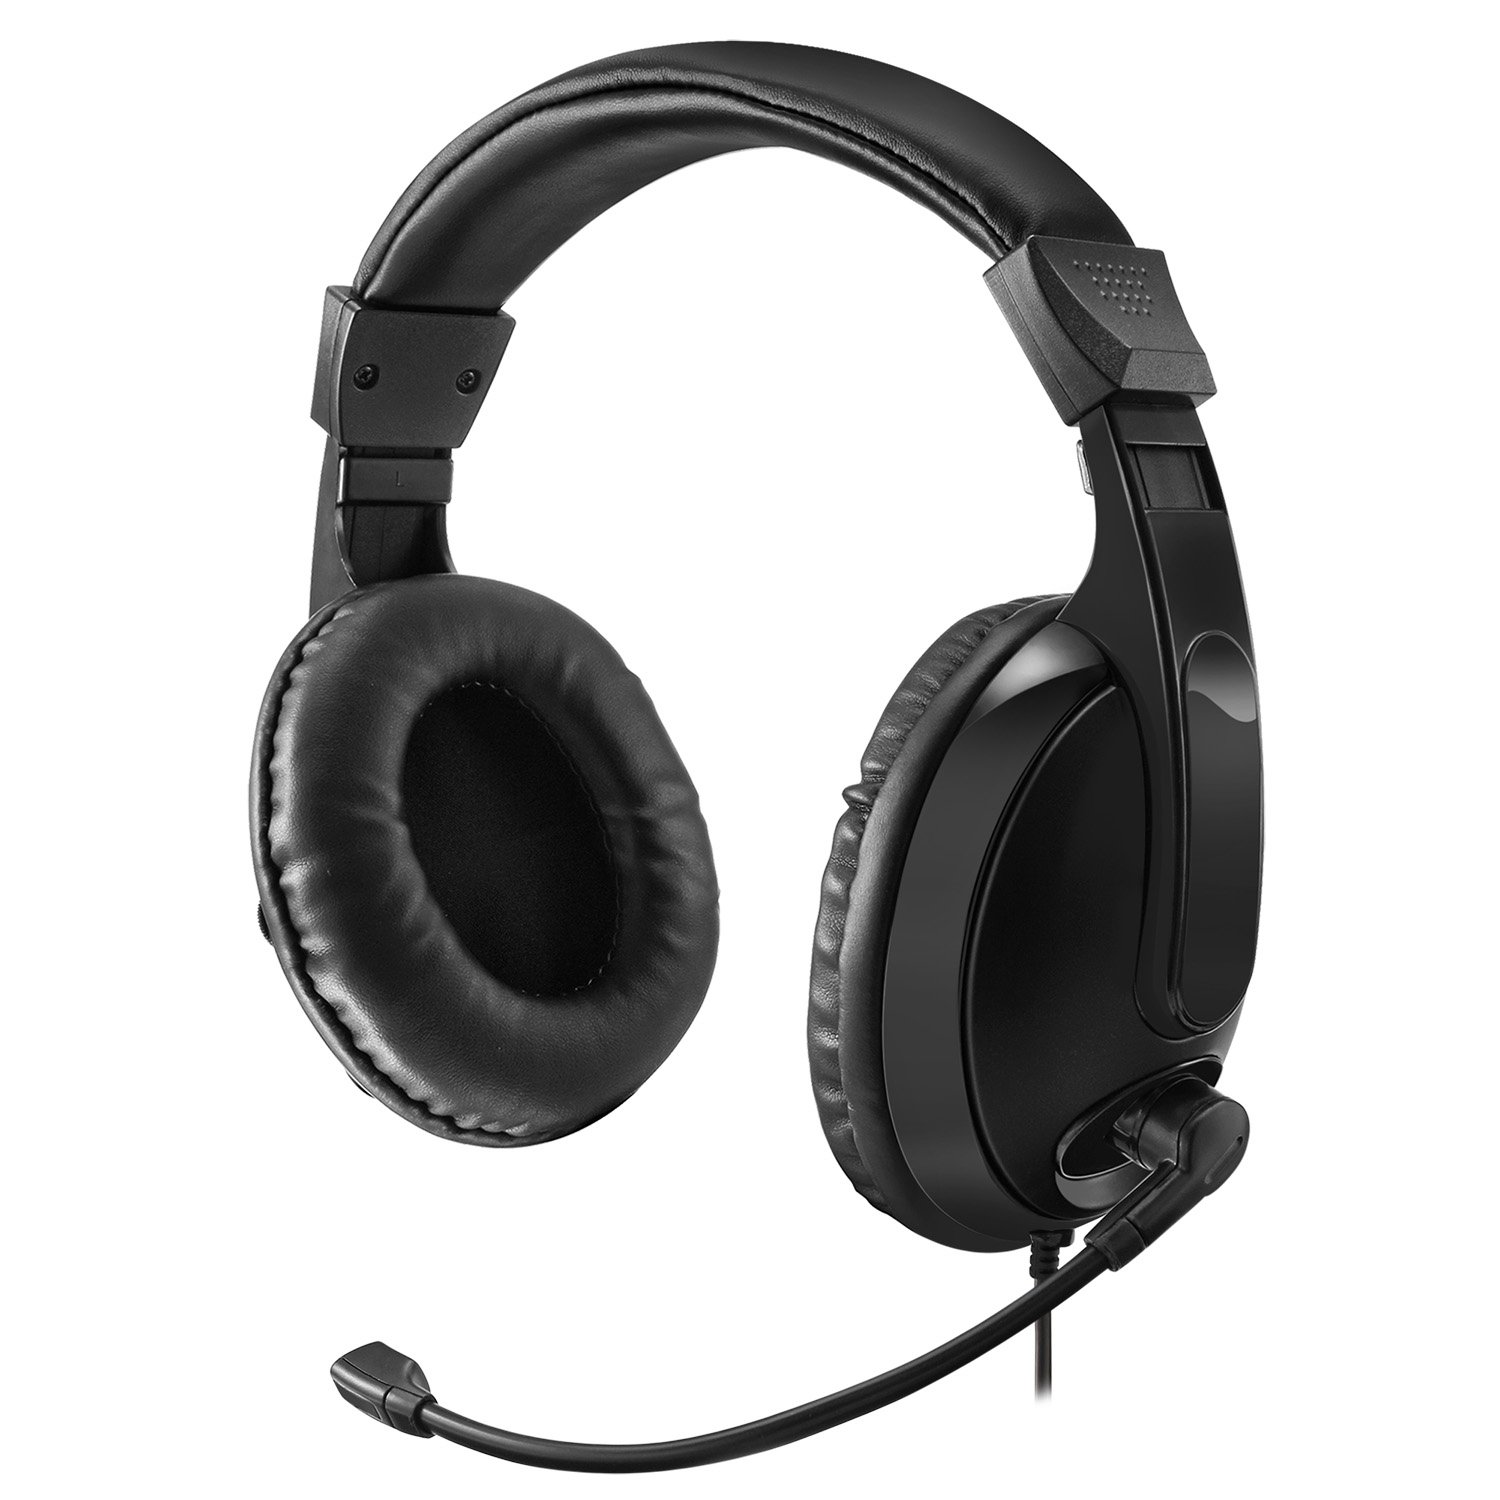 Adesso Xtream H5 - Multimedia Headset Microphone